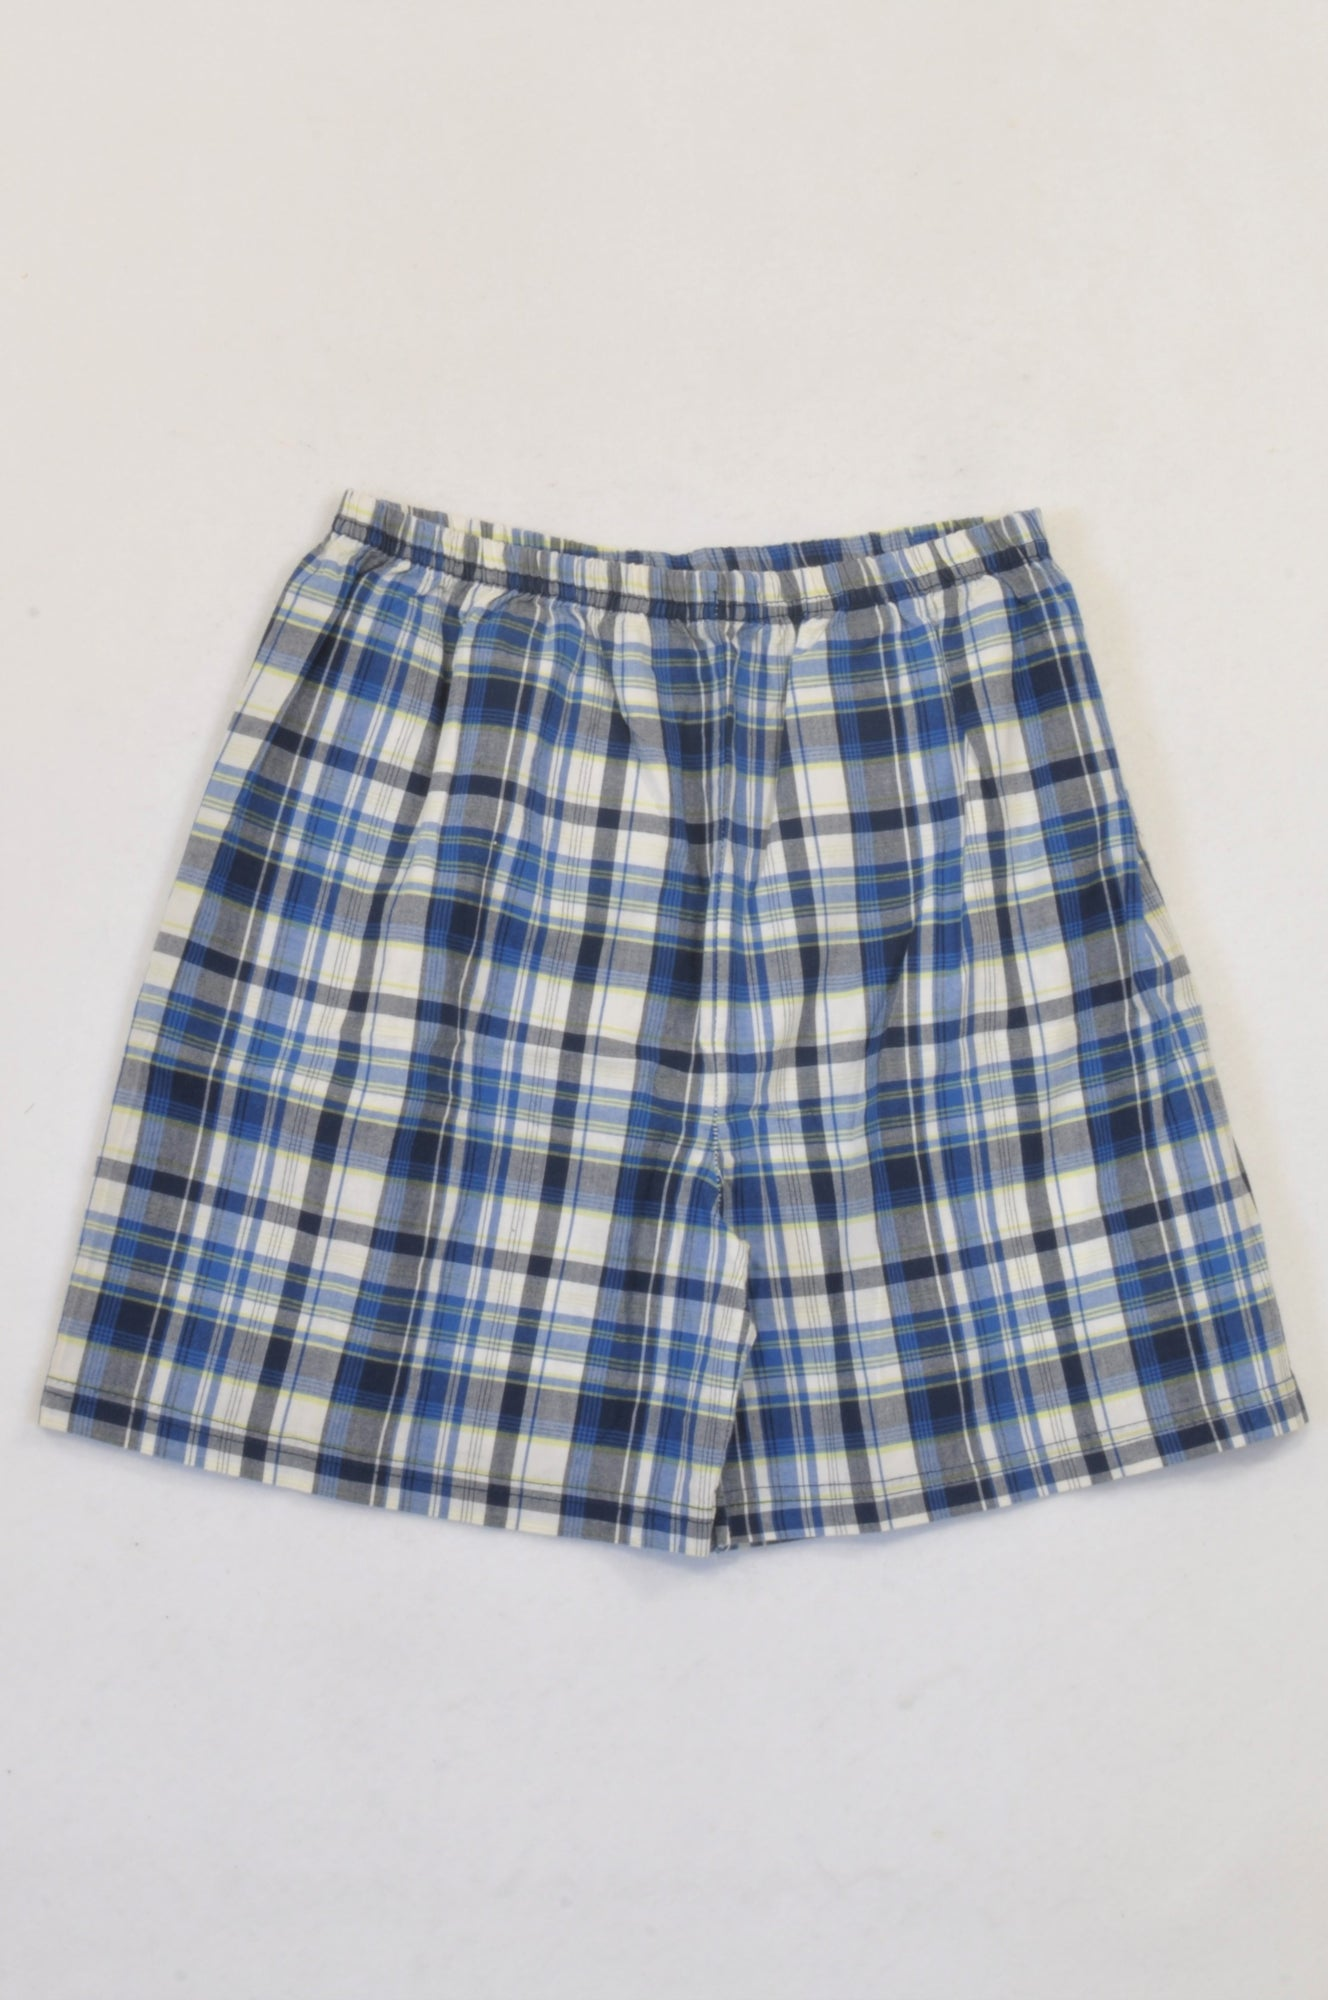 Woolworths Blue & Lime Plaid Shorts Boys 9-10 years